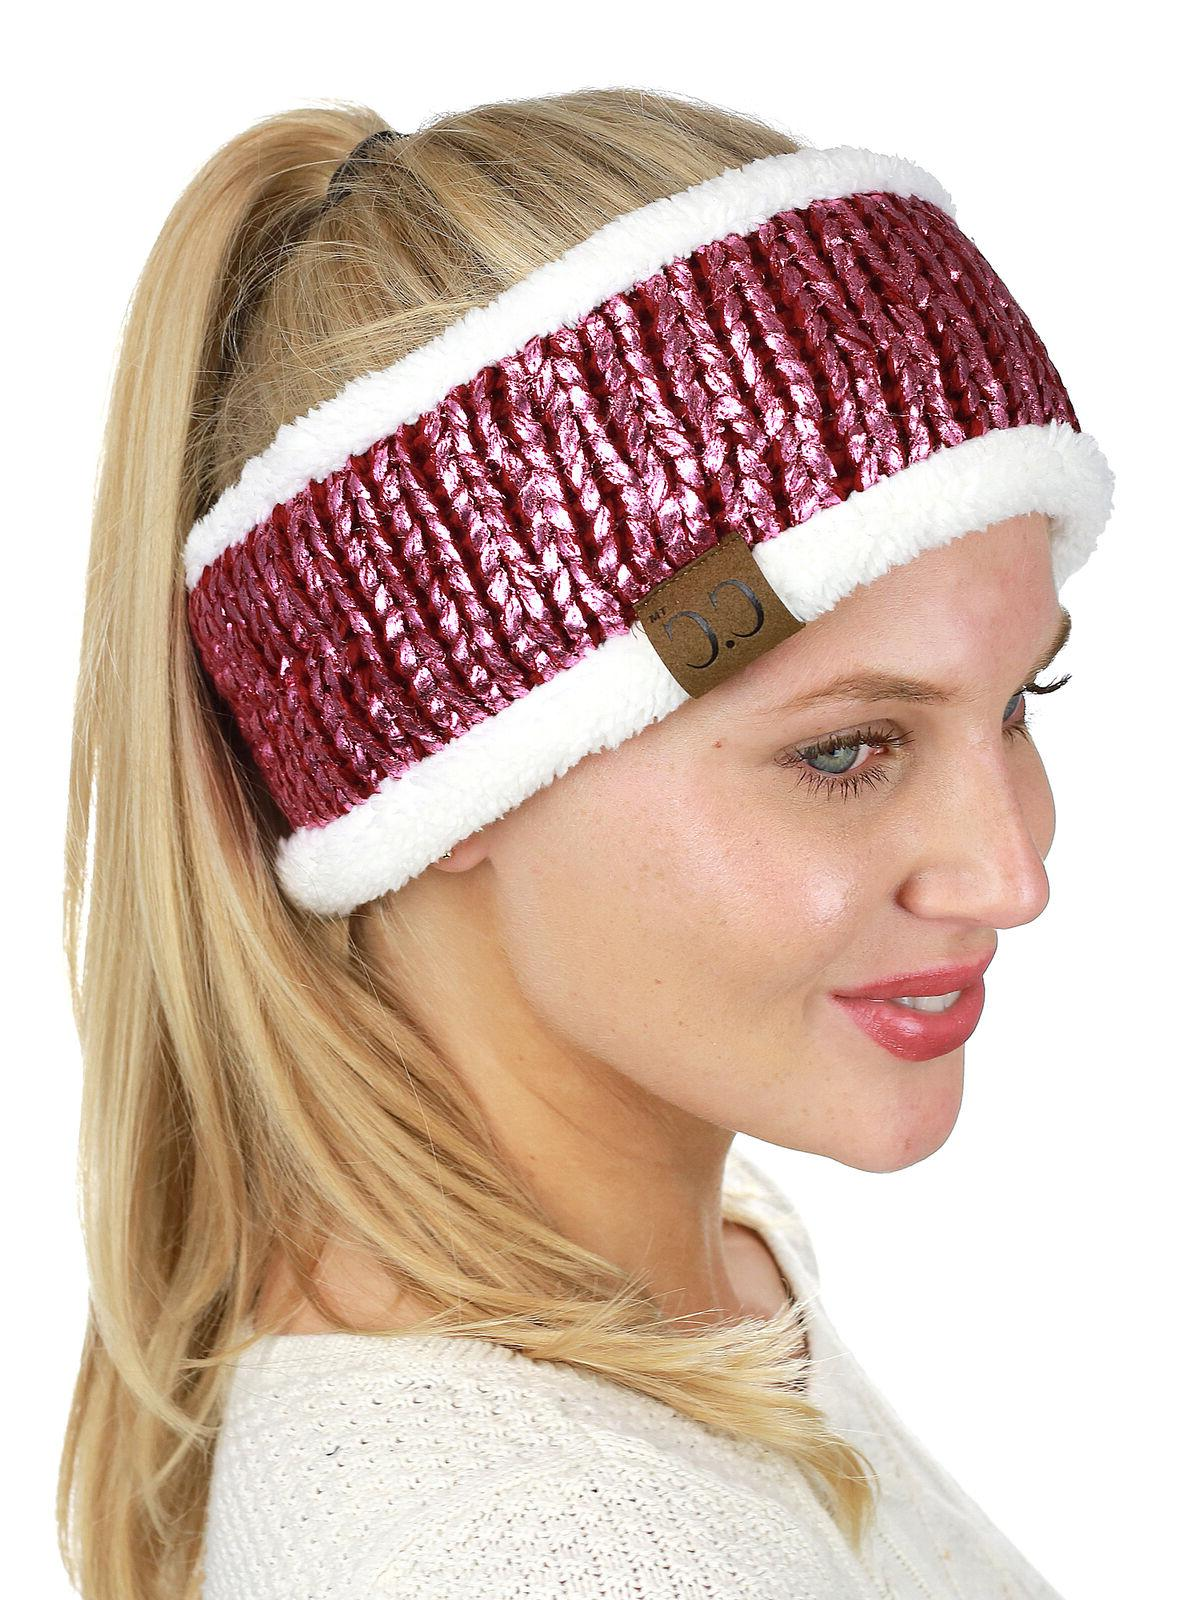 NEW! CC Head Colorful Knit FUZZY LINED Warmer Head Wrap